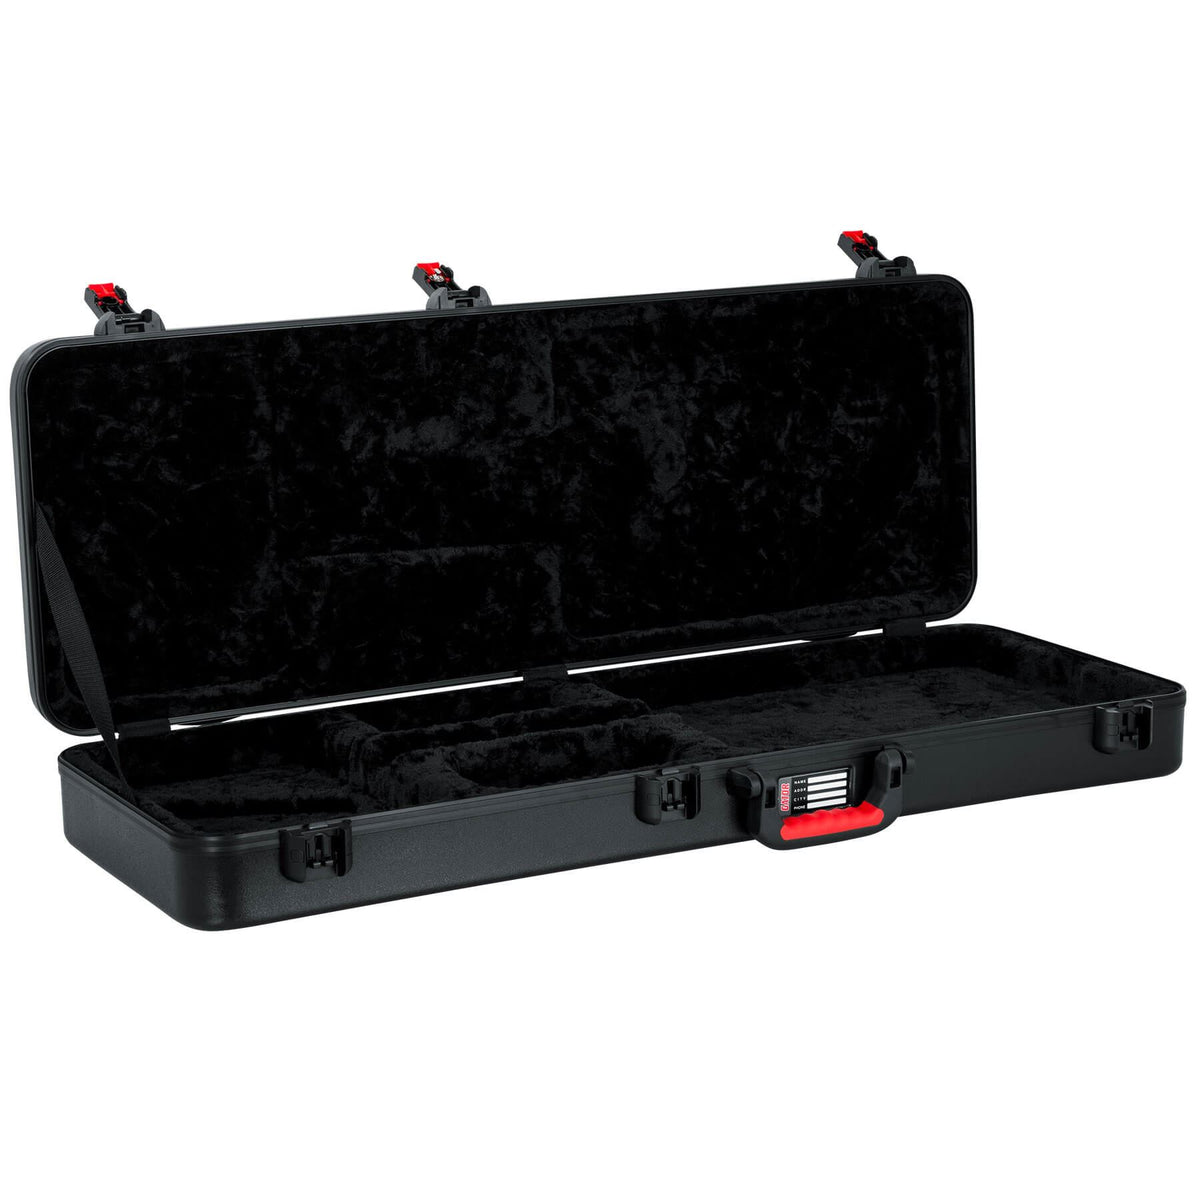 Gator TSA Electric Case fits Ibanez GRG170DX, GRX20, GRX20Z